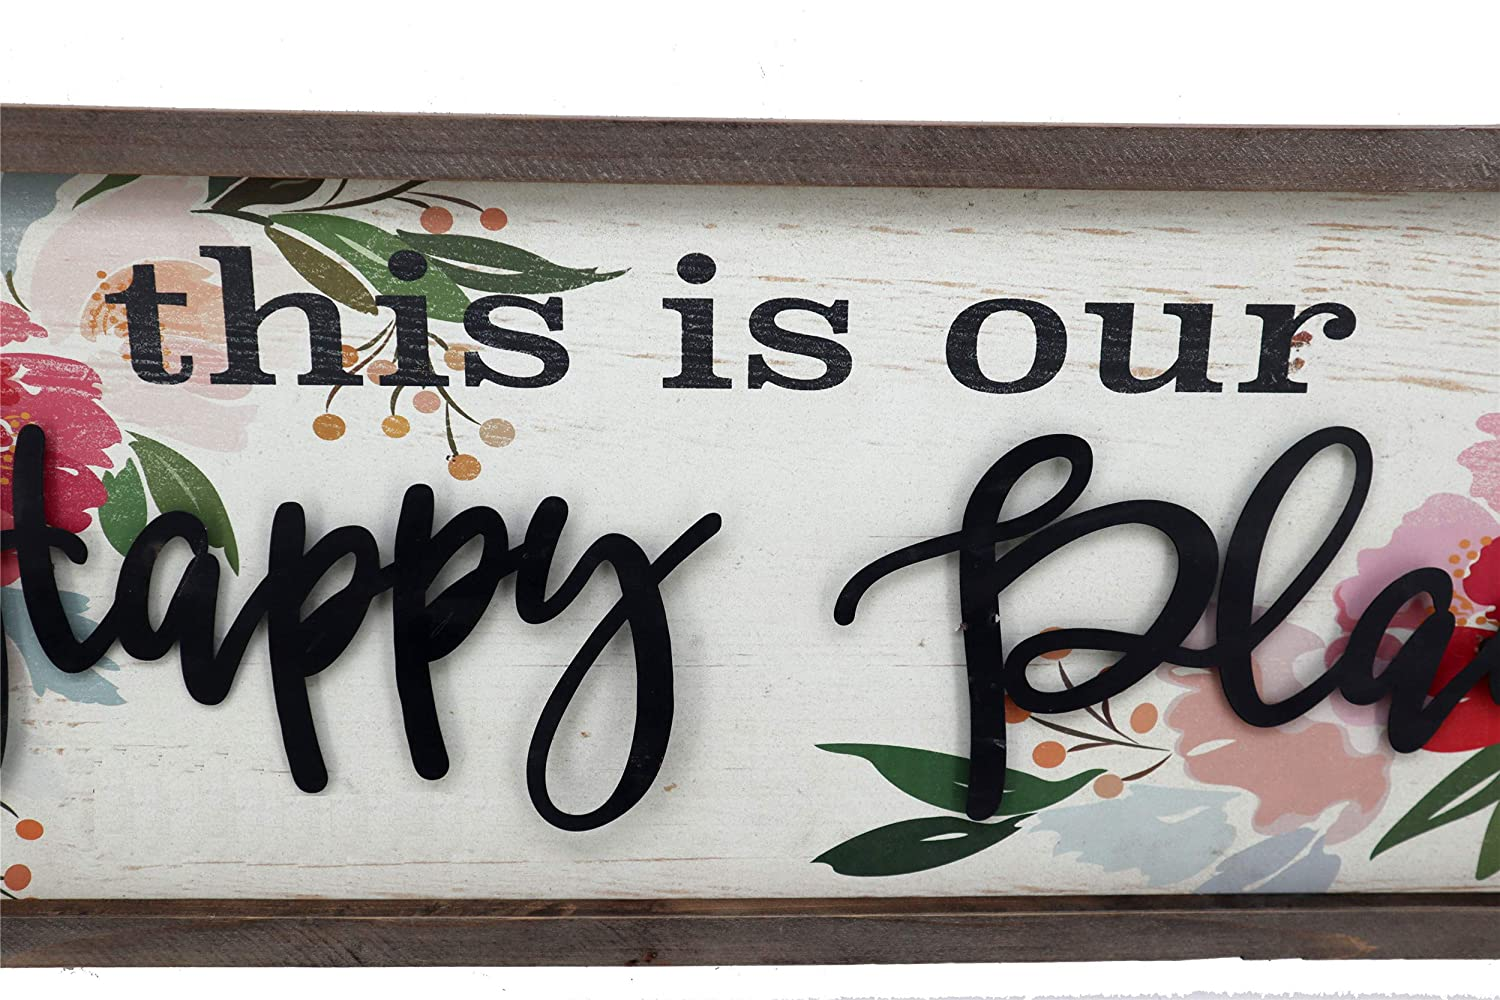 Parisloft This Is Our Happy Place Wood Framed Sign Floral Background 3d Metal Quote Large Wood Wall Decor 31 5 X 1 X 11 8 Inches This Is Our Happy